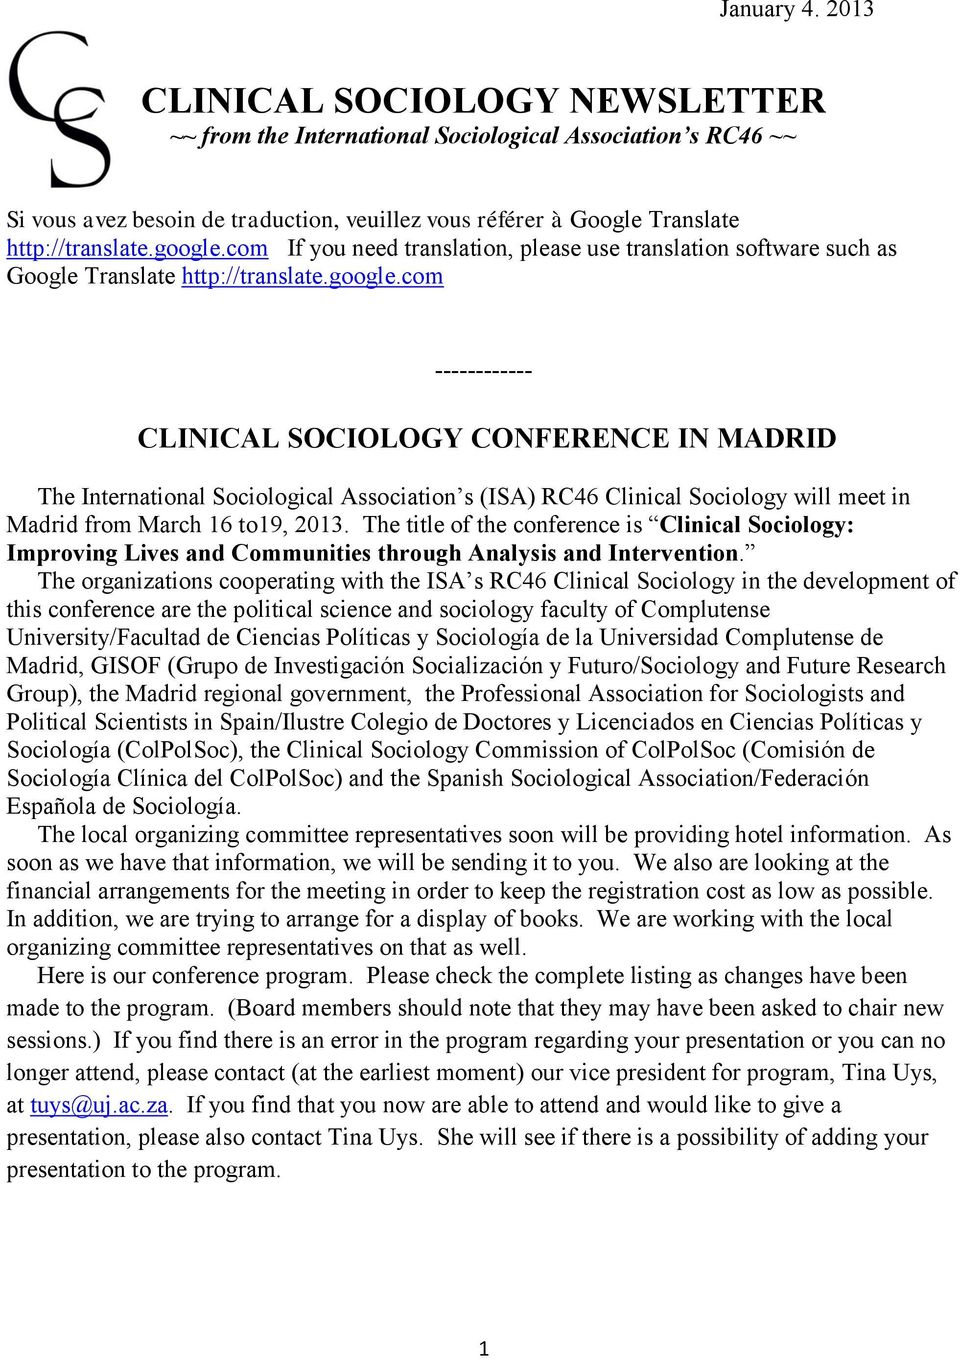 The title of the conference is Clinical Sociology: Improving Lives and Communities through Analysis and Intervention.